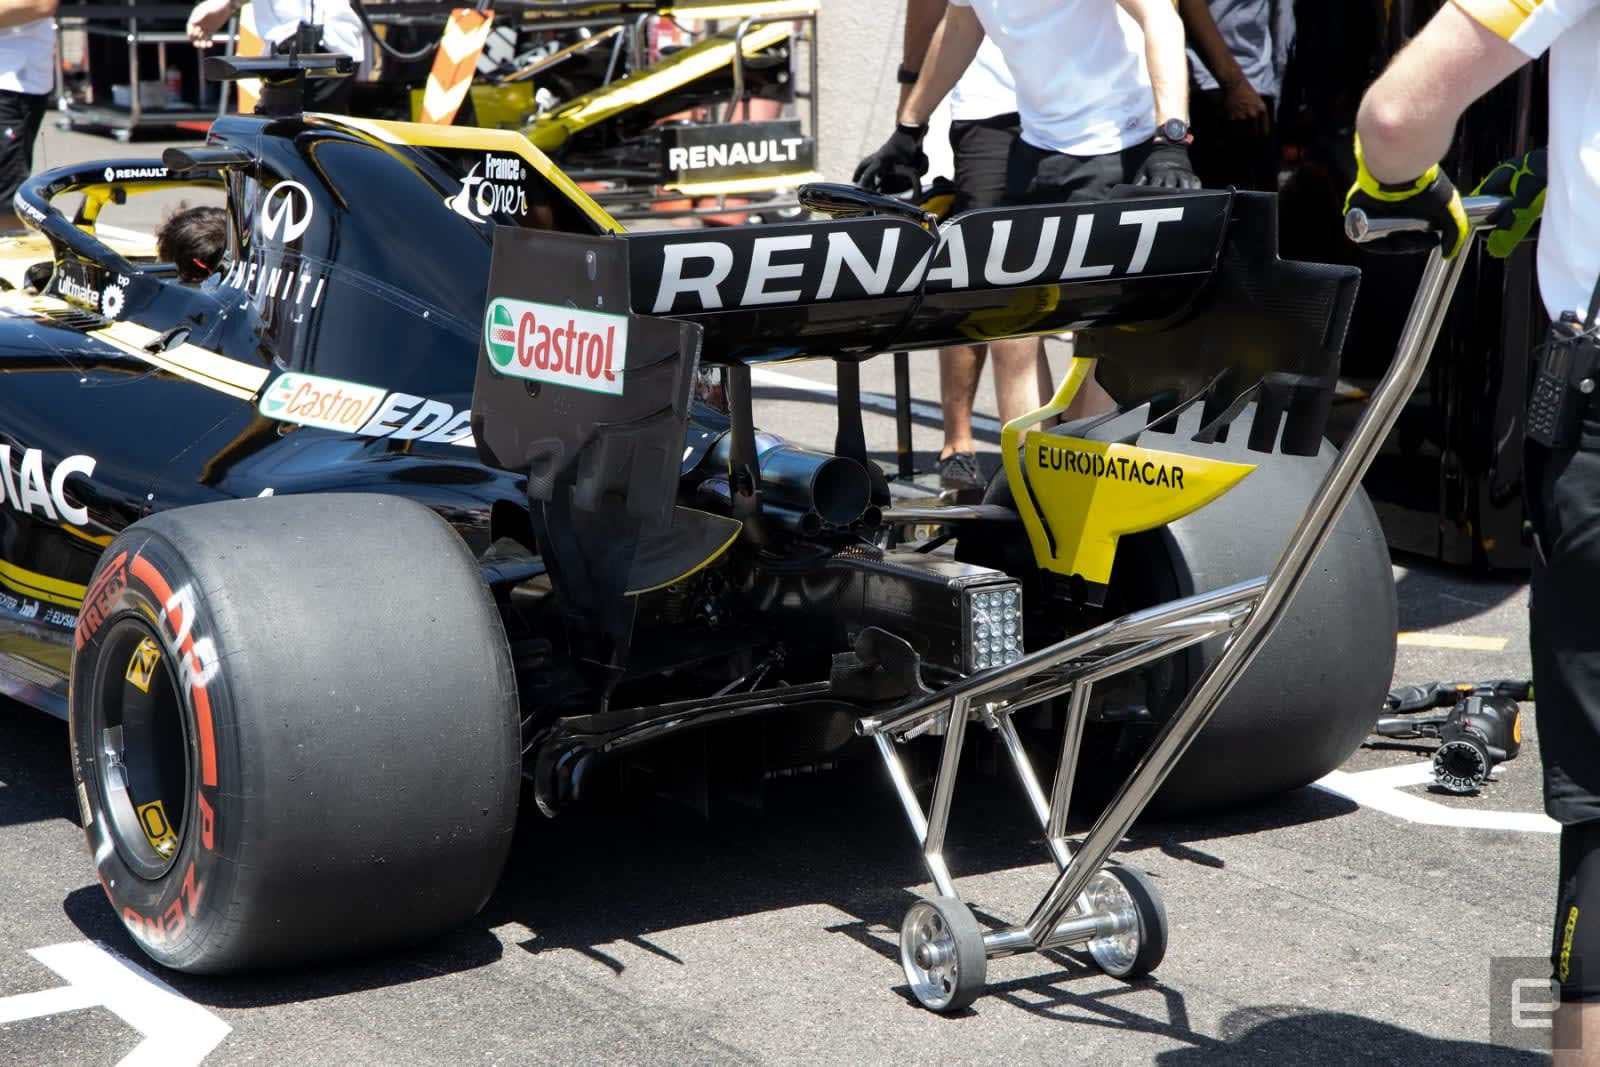 Formula 1's underdogs struggle with the technical challenges